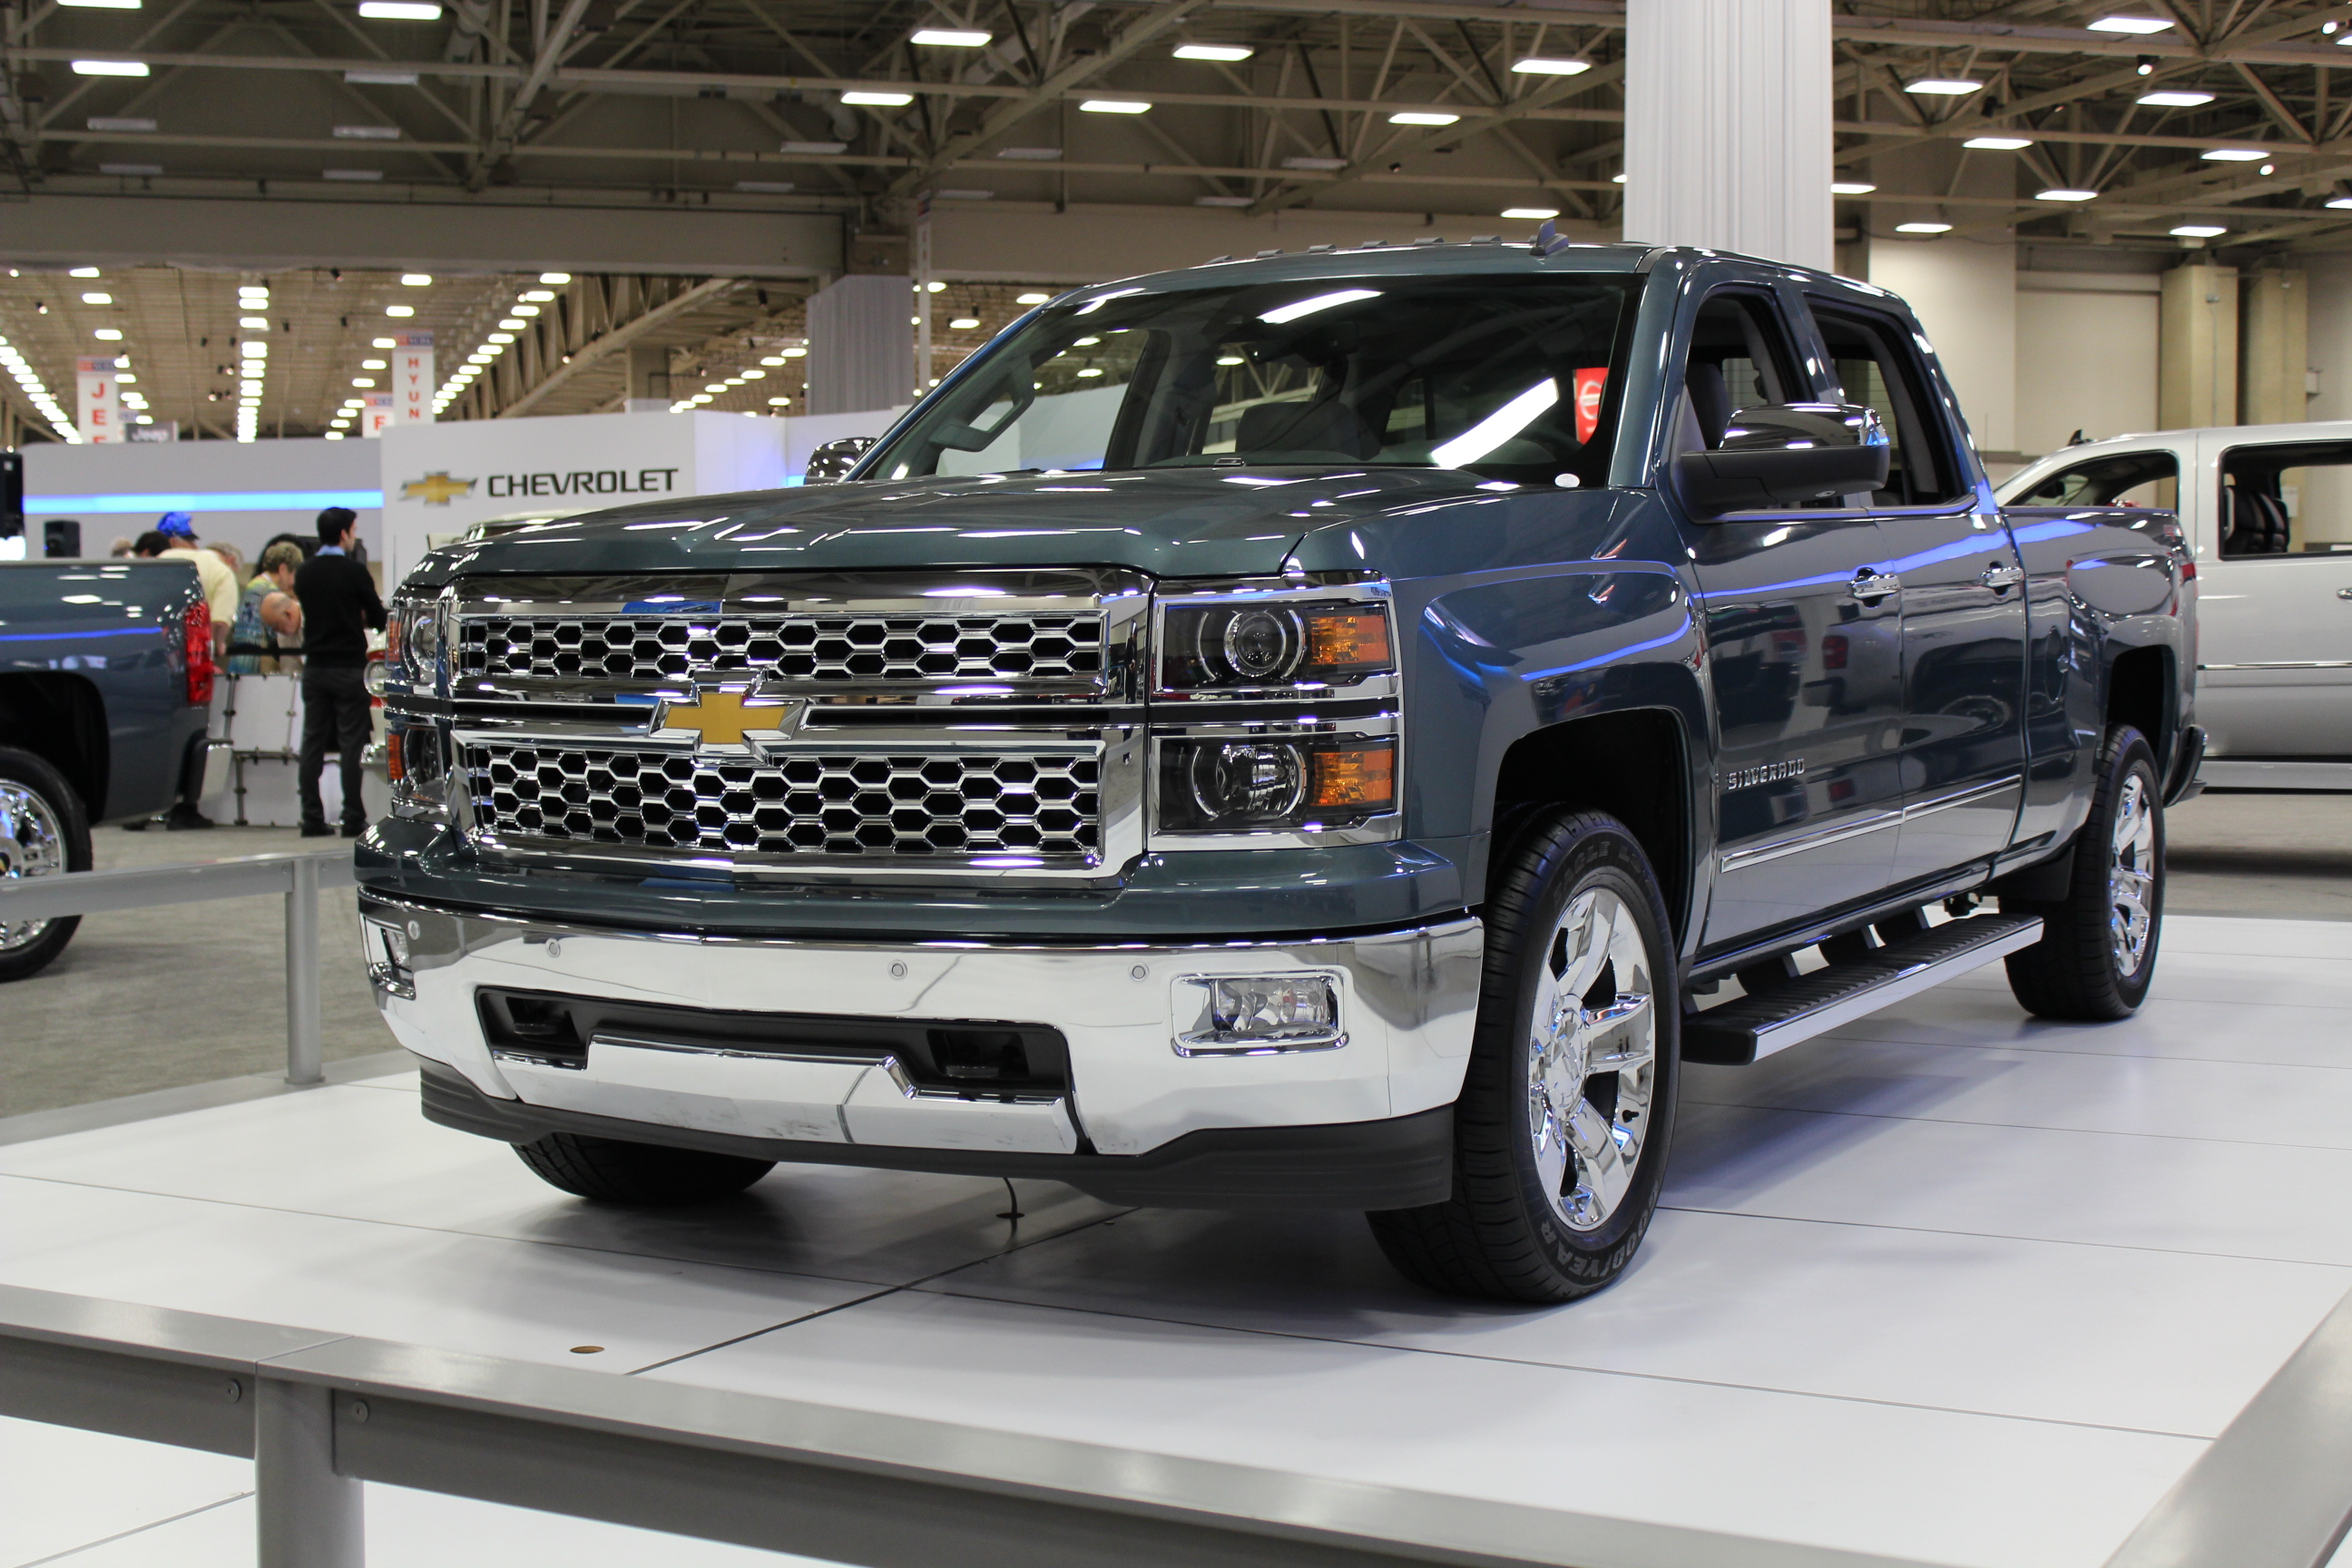 2014 Chevrolet Silverado 1500 On Display At The Dallas Auto